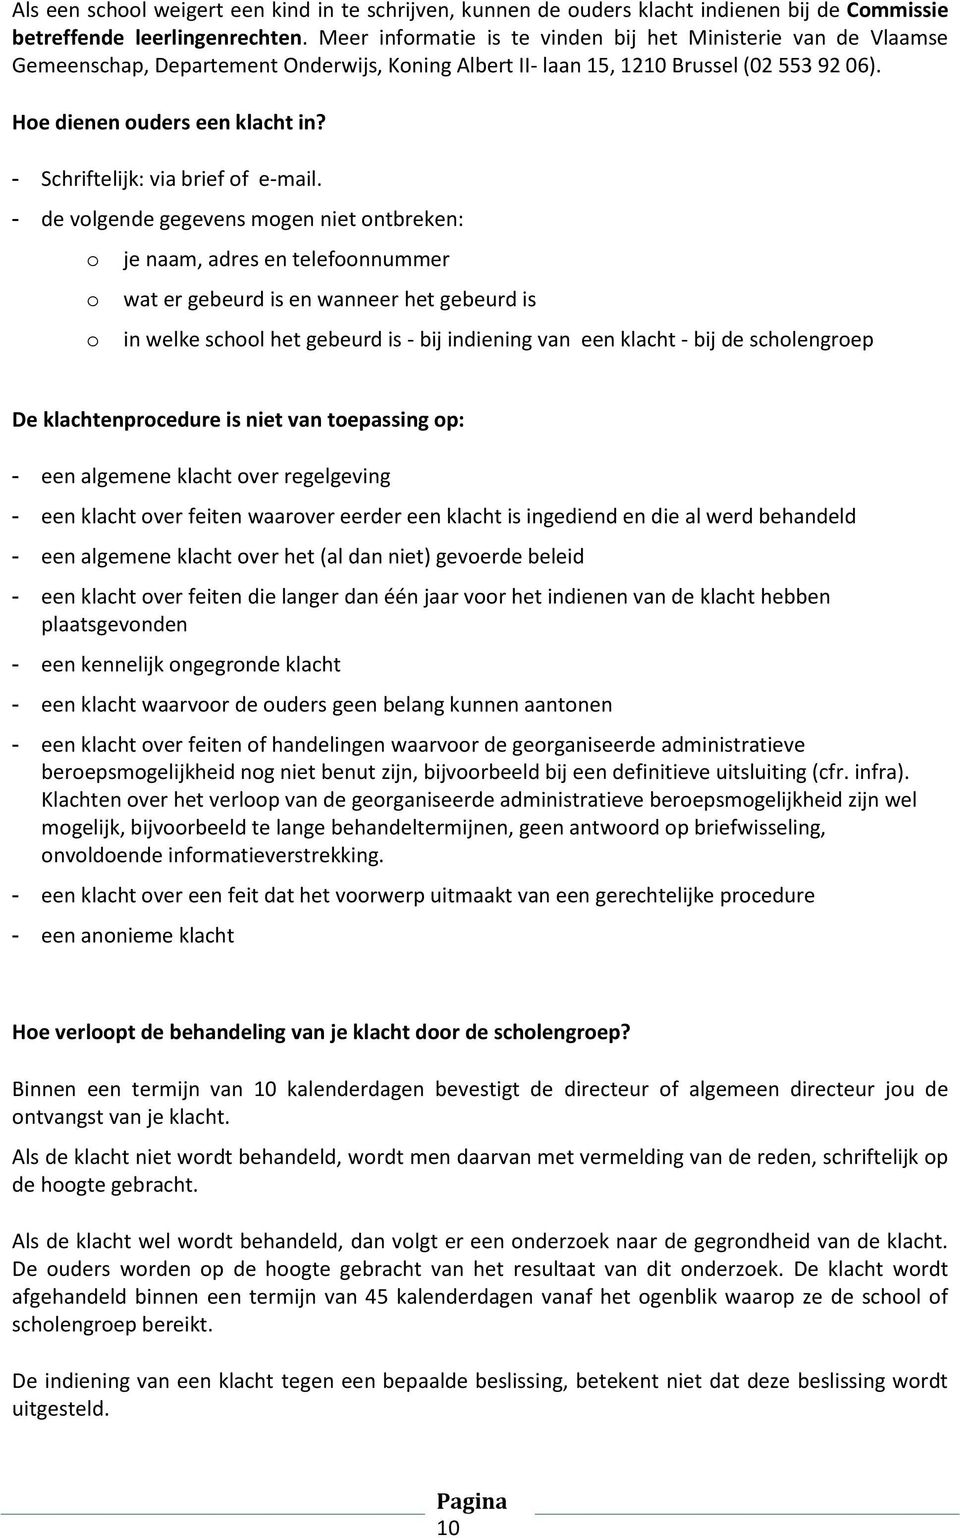 - Schriftelijk: via brief of e-mail.